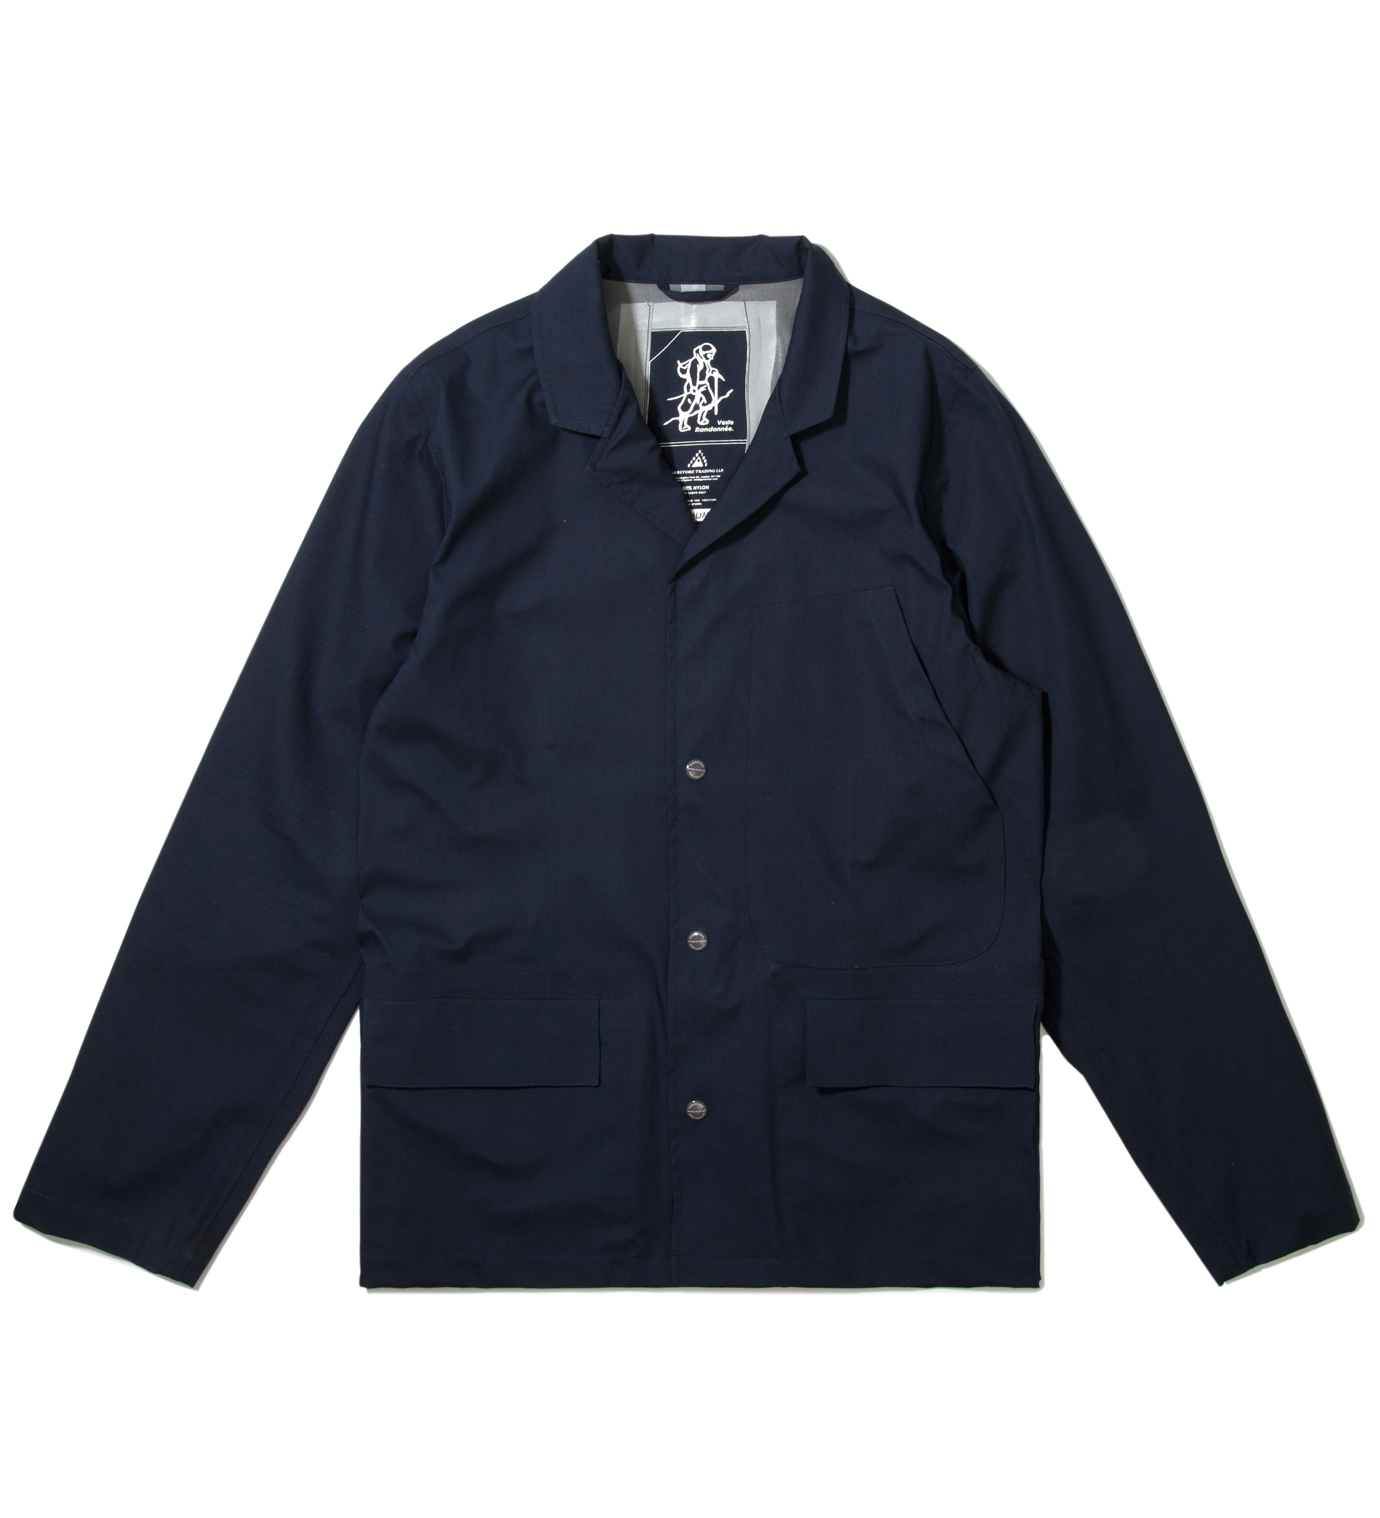 GARBSTORE Navy Laser Cut Seam Welded Fell Jacket